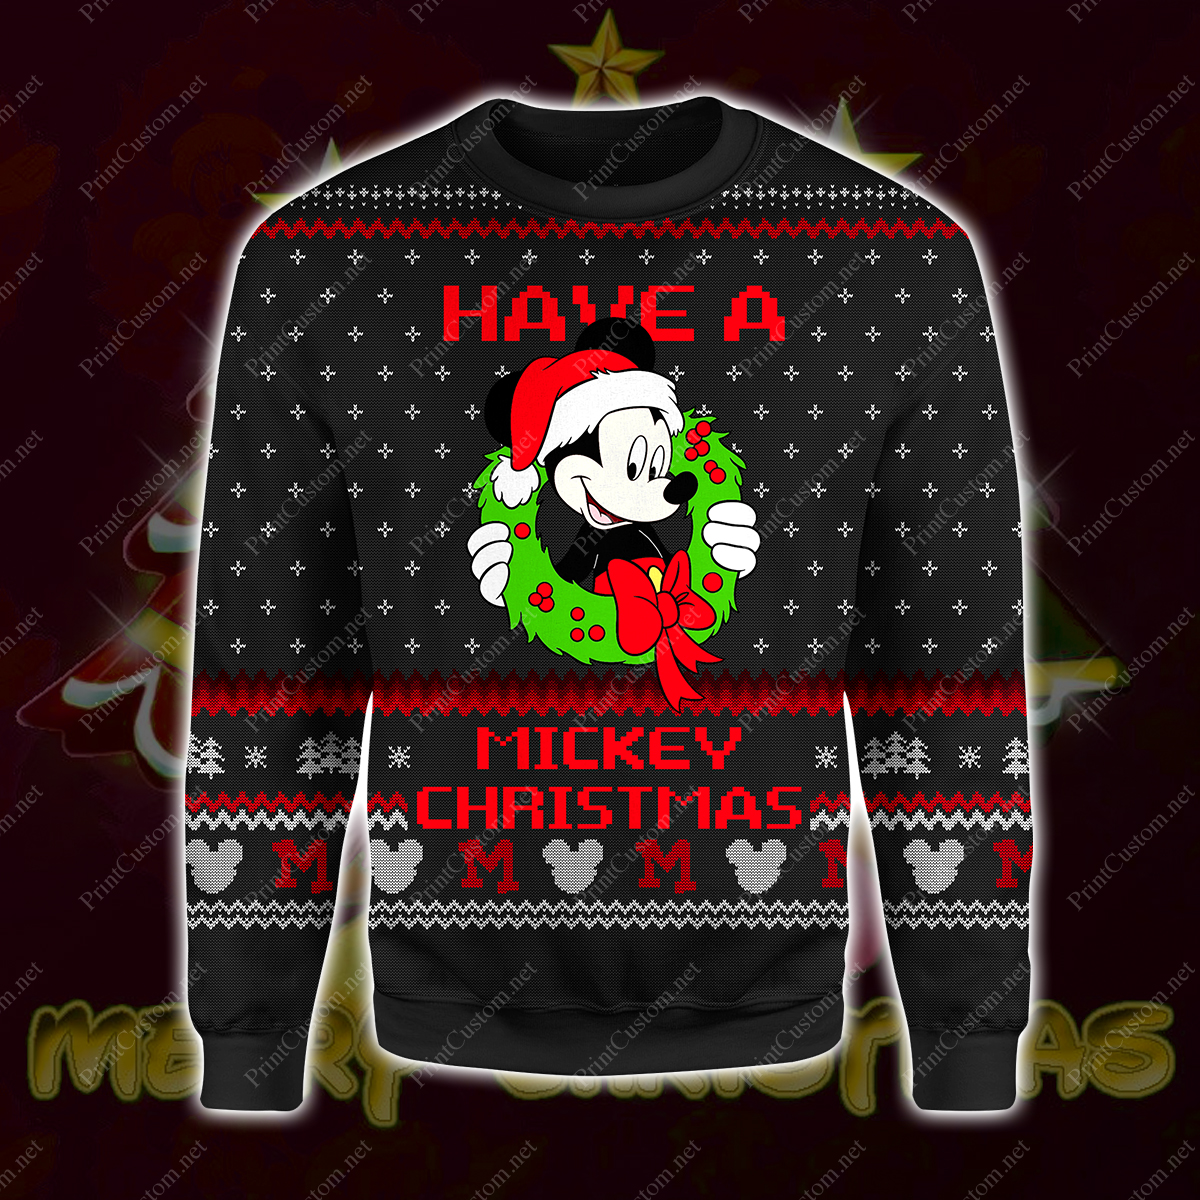 Have a mickey christmas full printing ugly christmas sweater 1